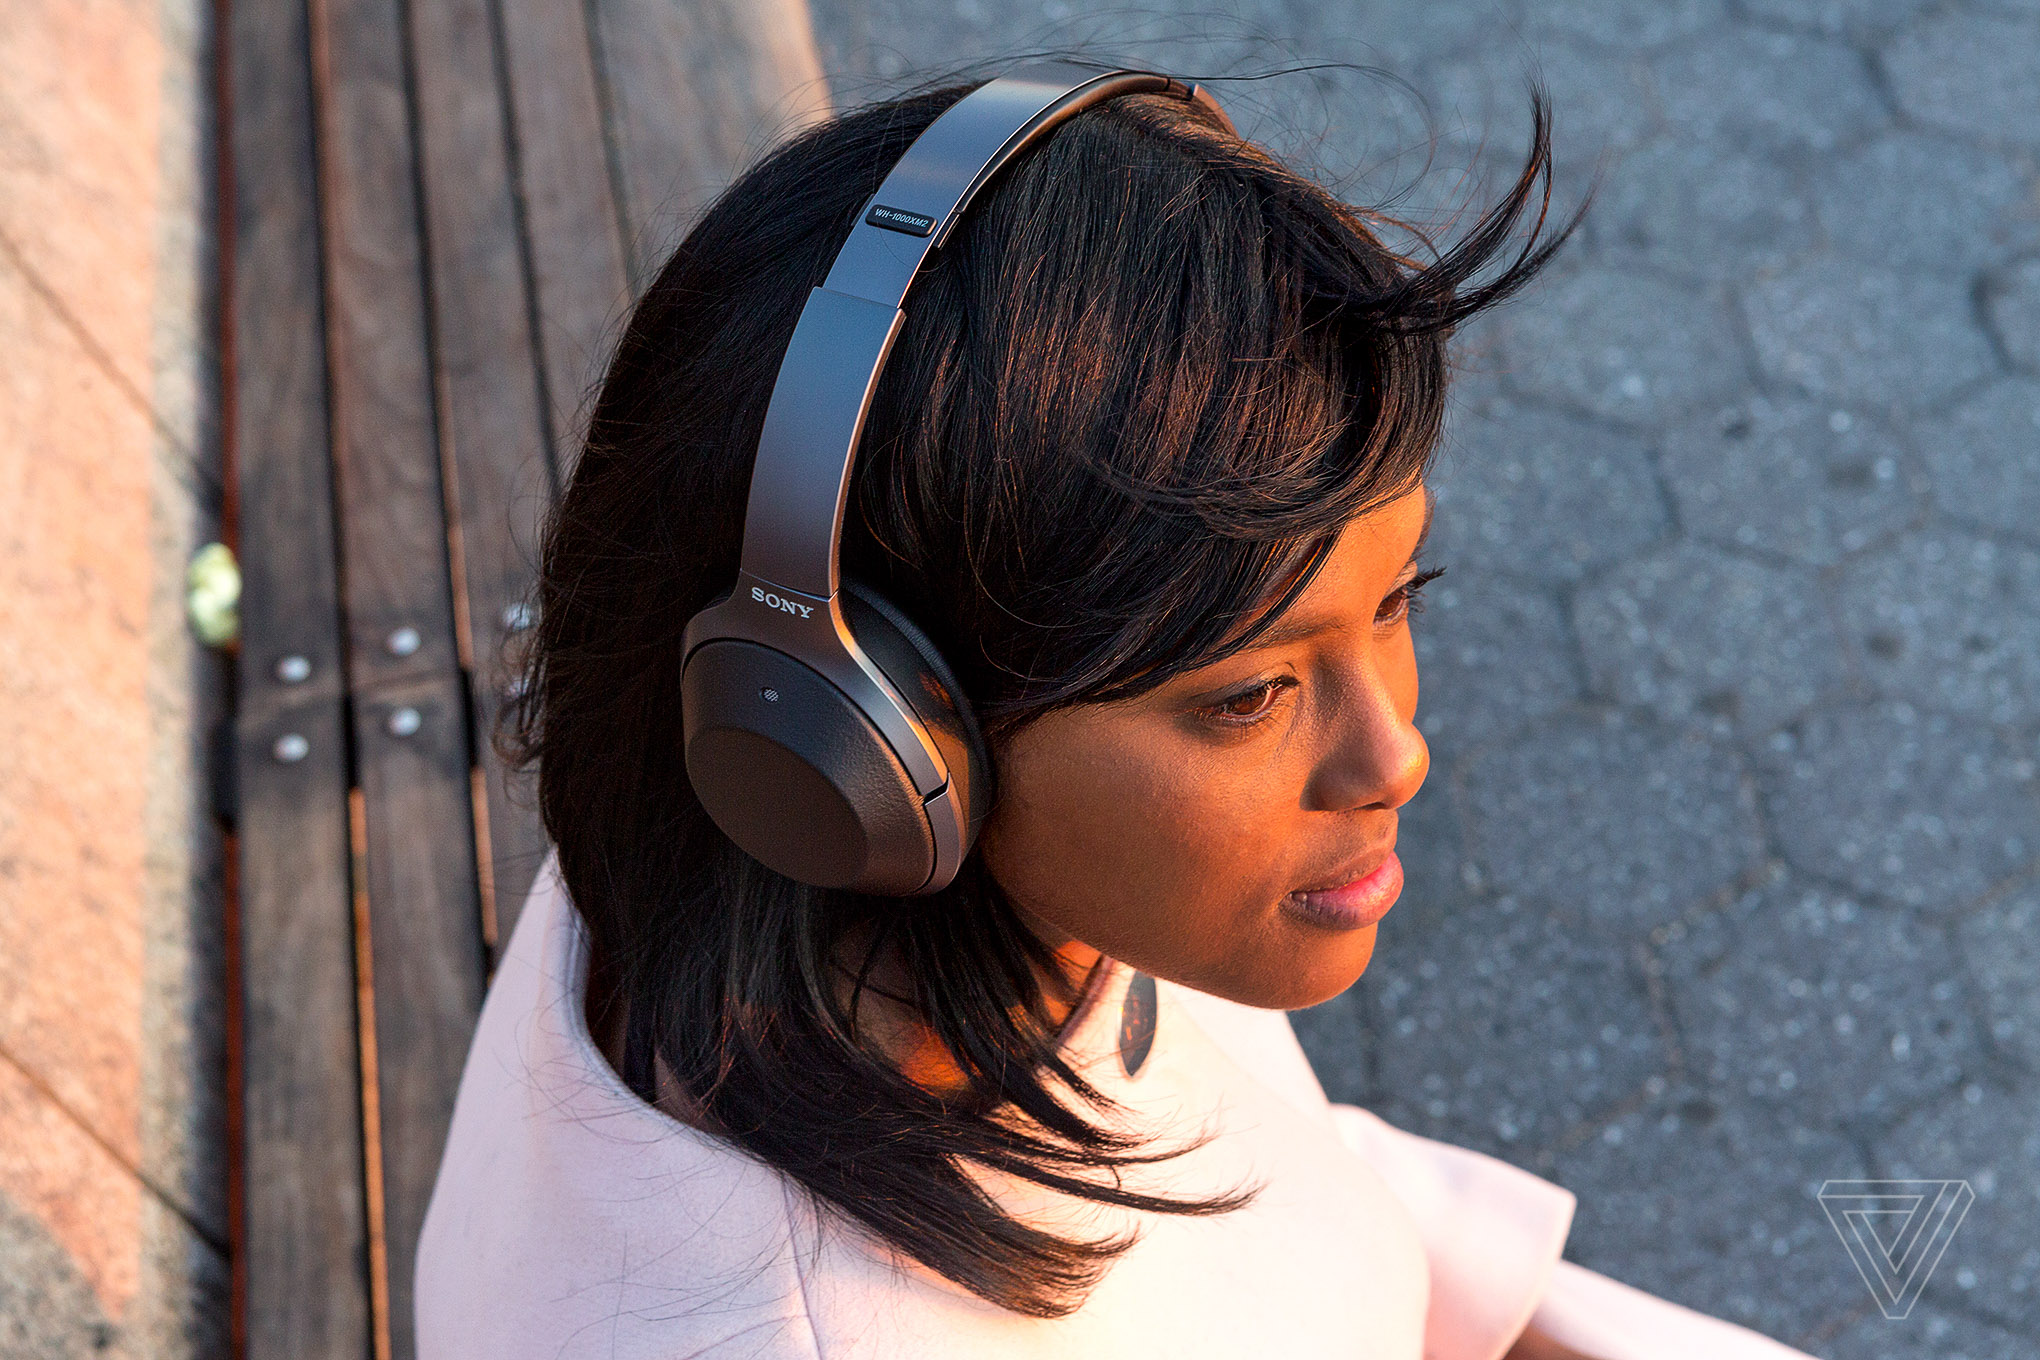 Sony 1000XM2 noise-cancelling headphones review: the imperfect best